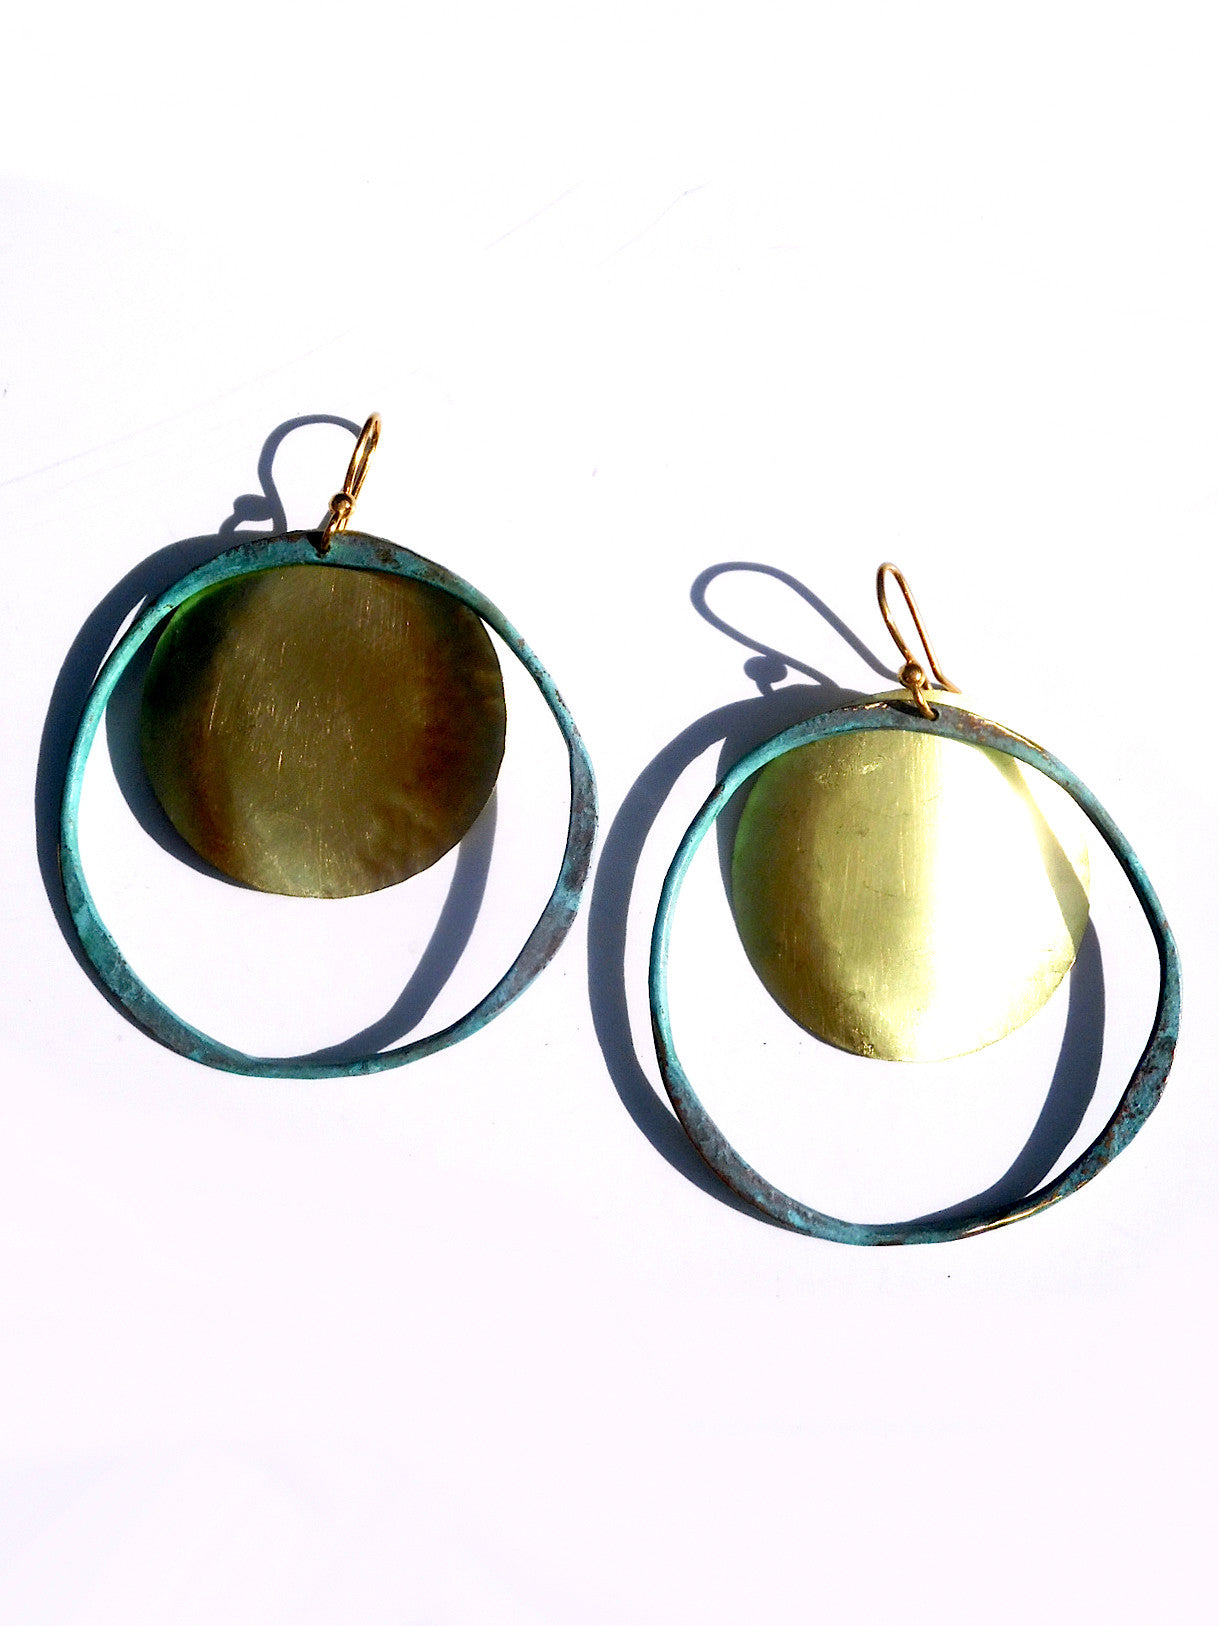 Earrings Hoop And Disc Patina And Gold On Brass